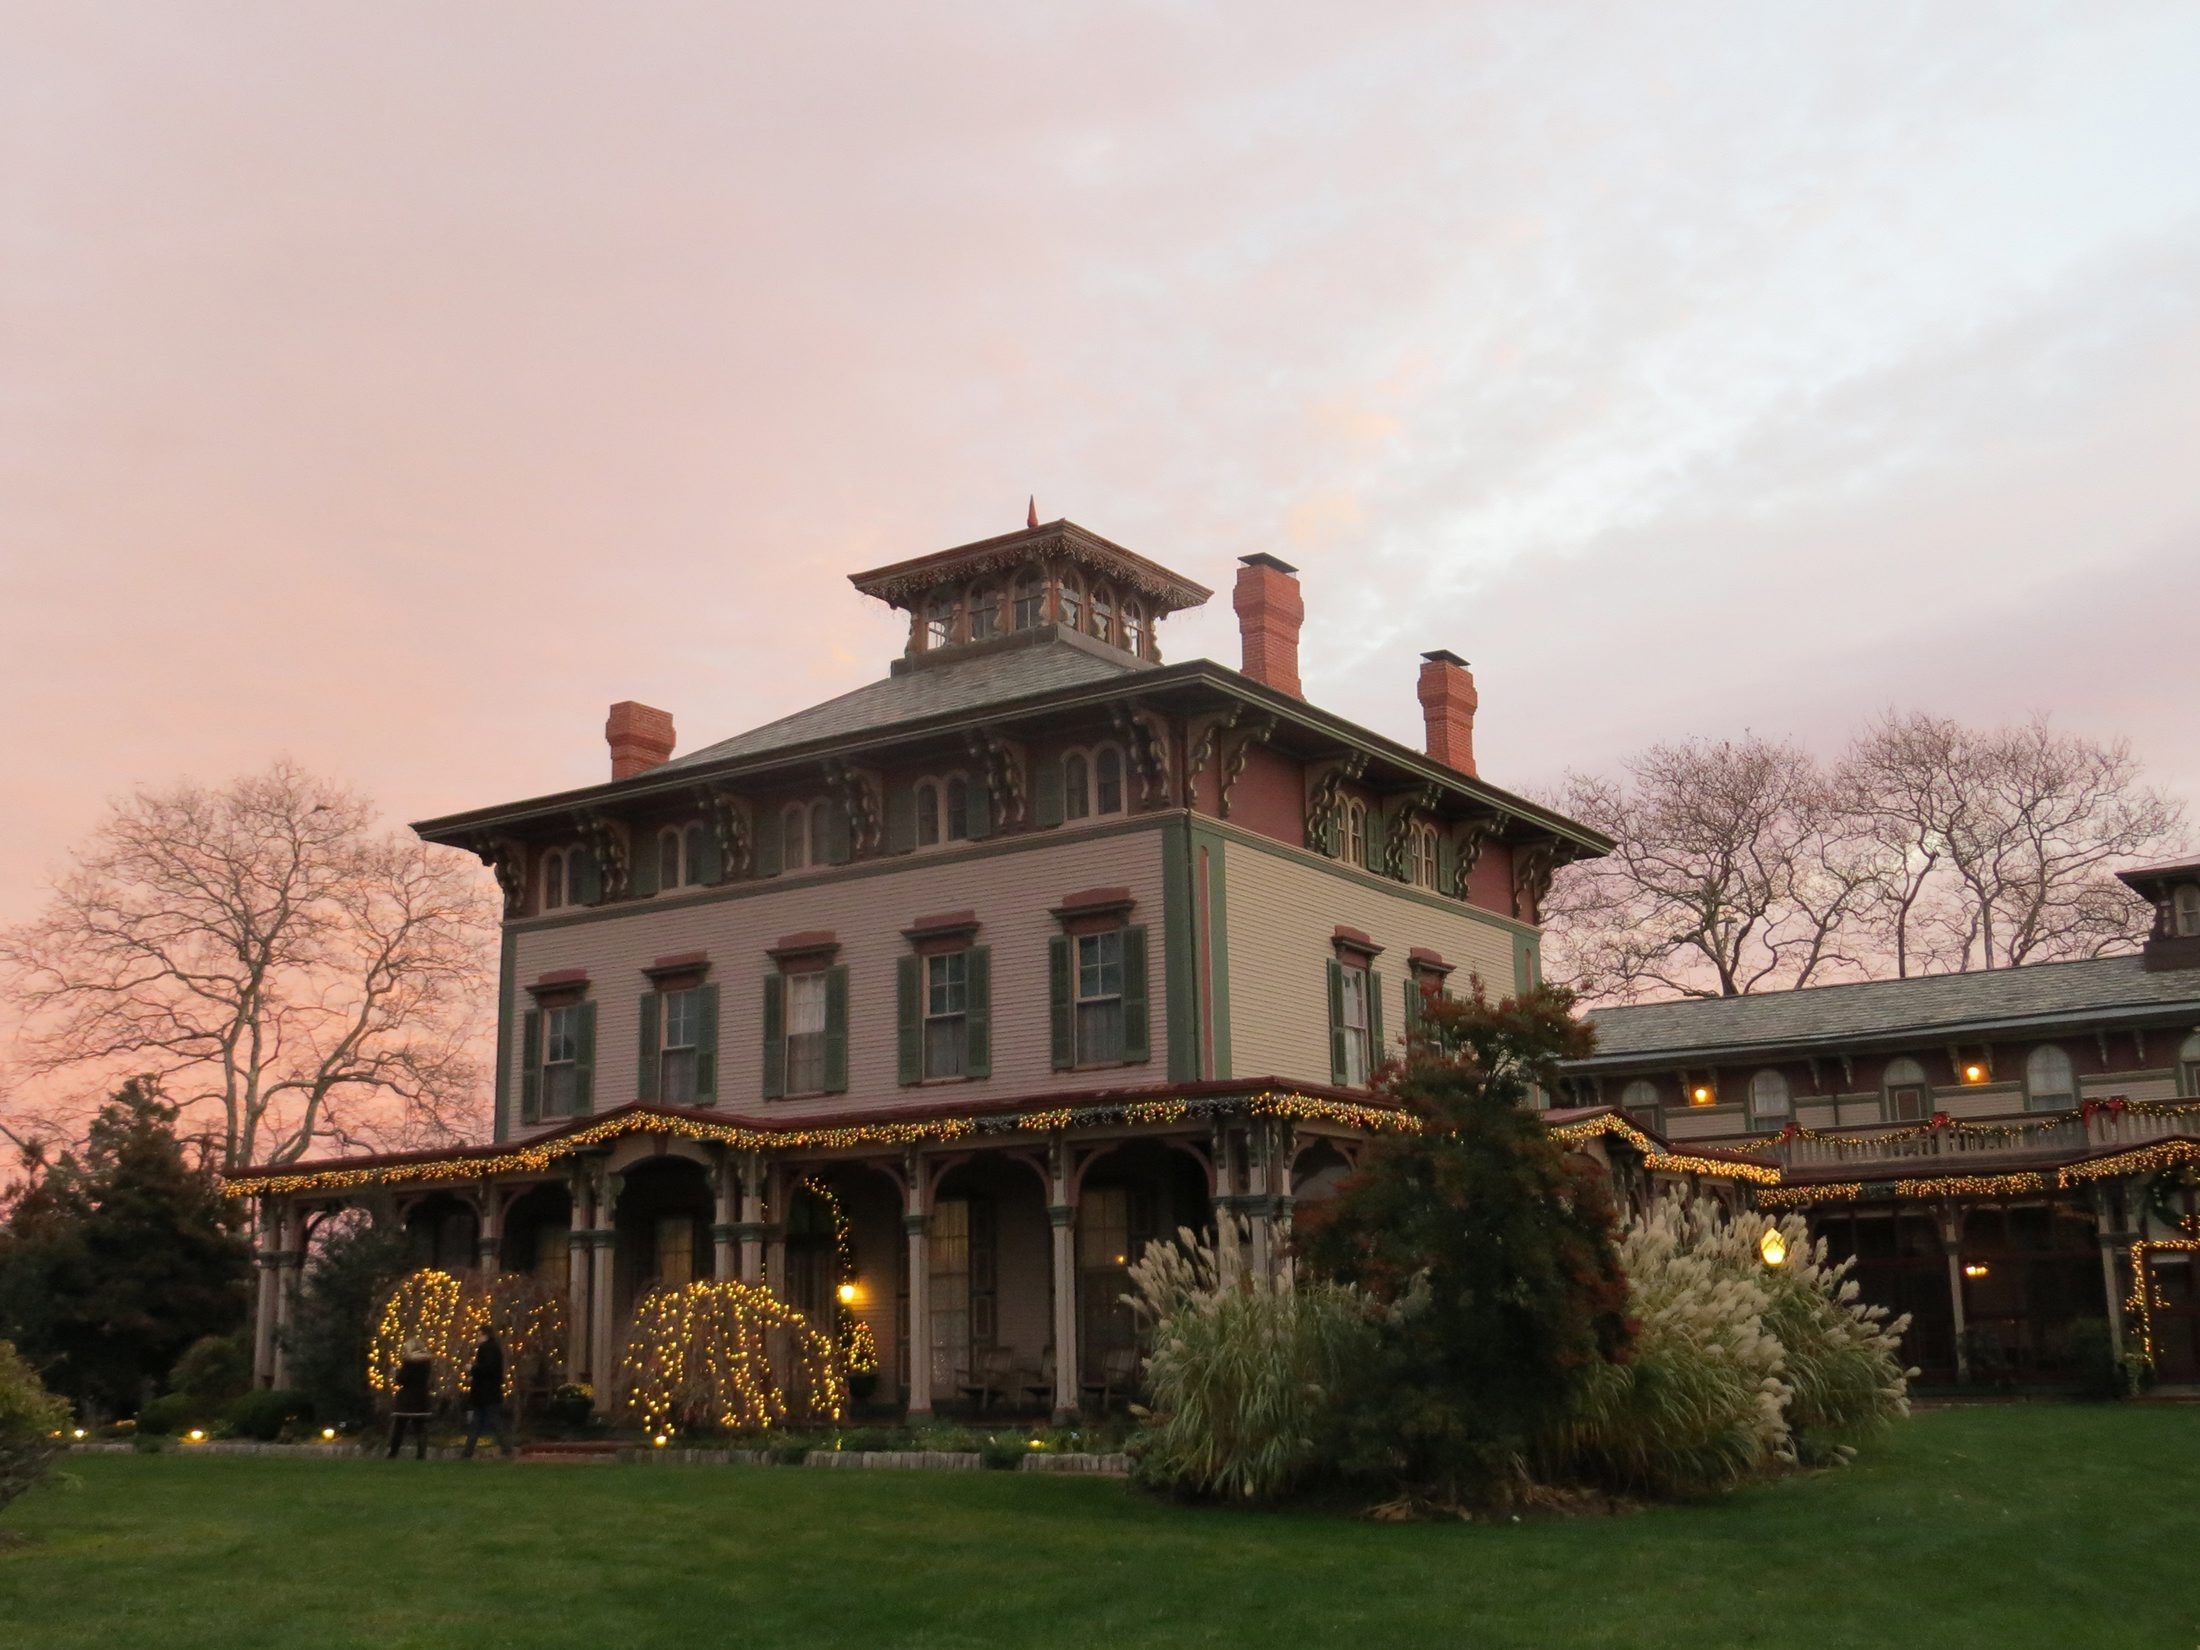 Cape May, N.J., is home to many Victorian bed-and-breakfasts, including the Southern Mansion that decorates with lights for the holiday season.